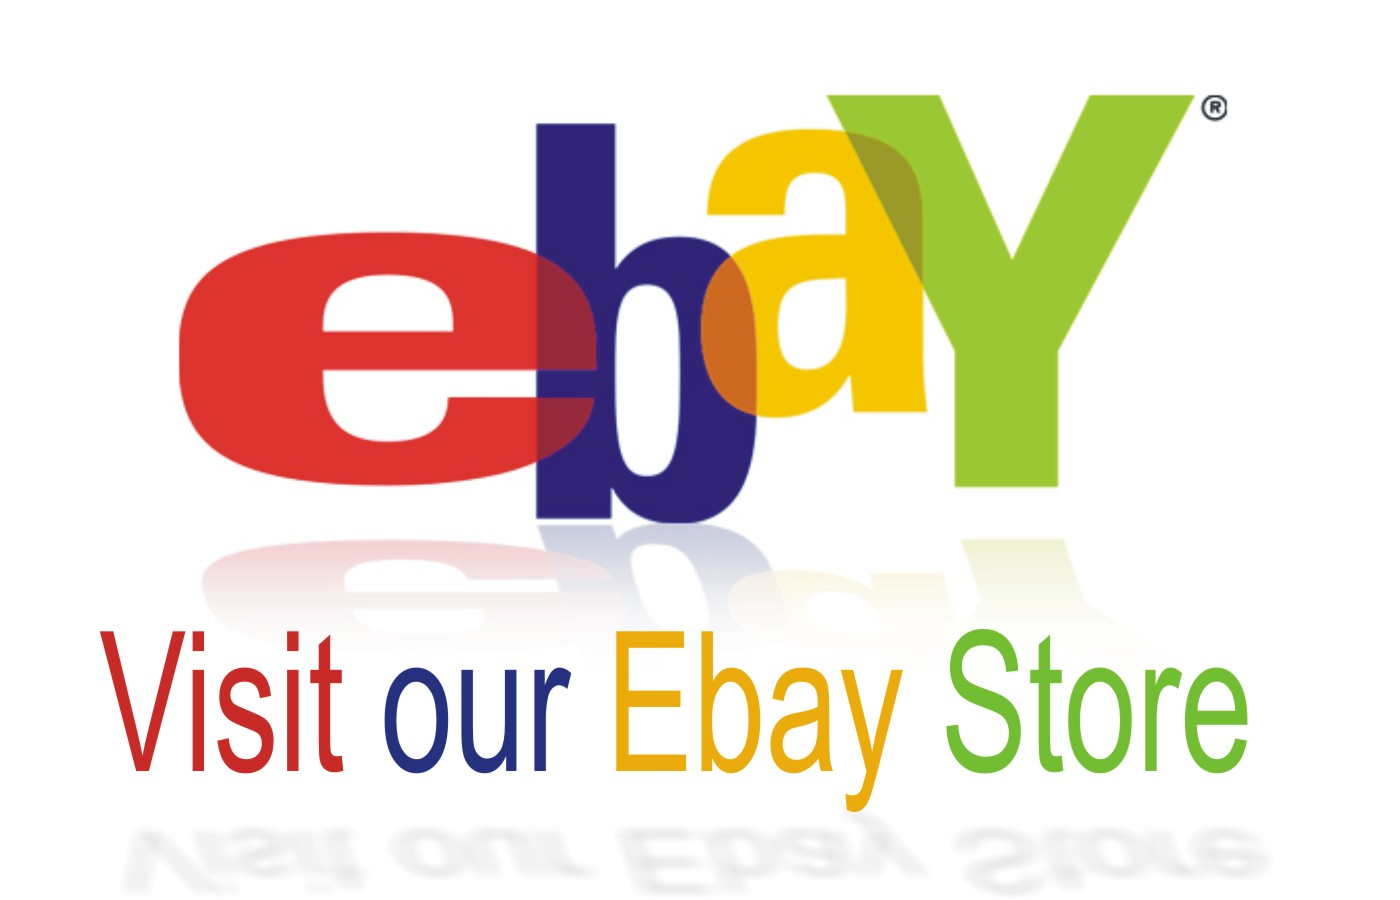 Our Ebay Store